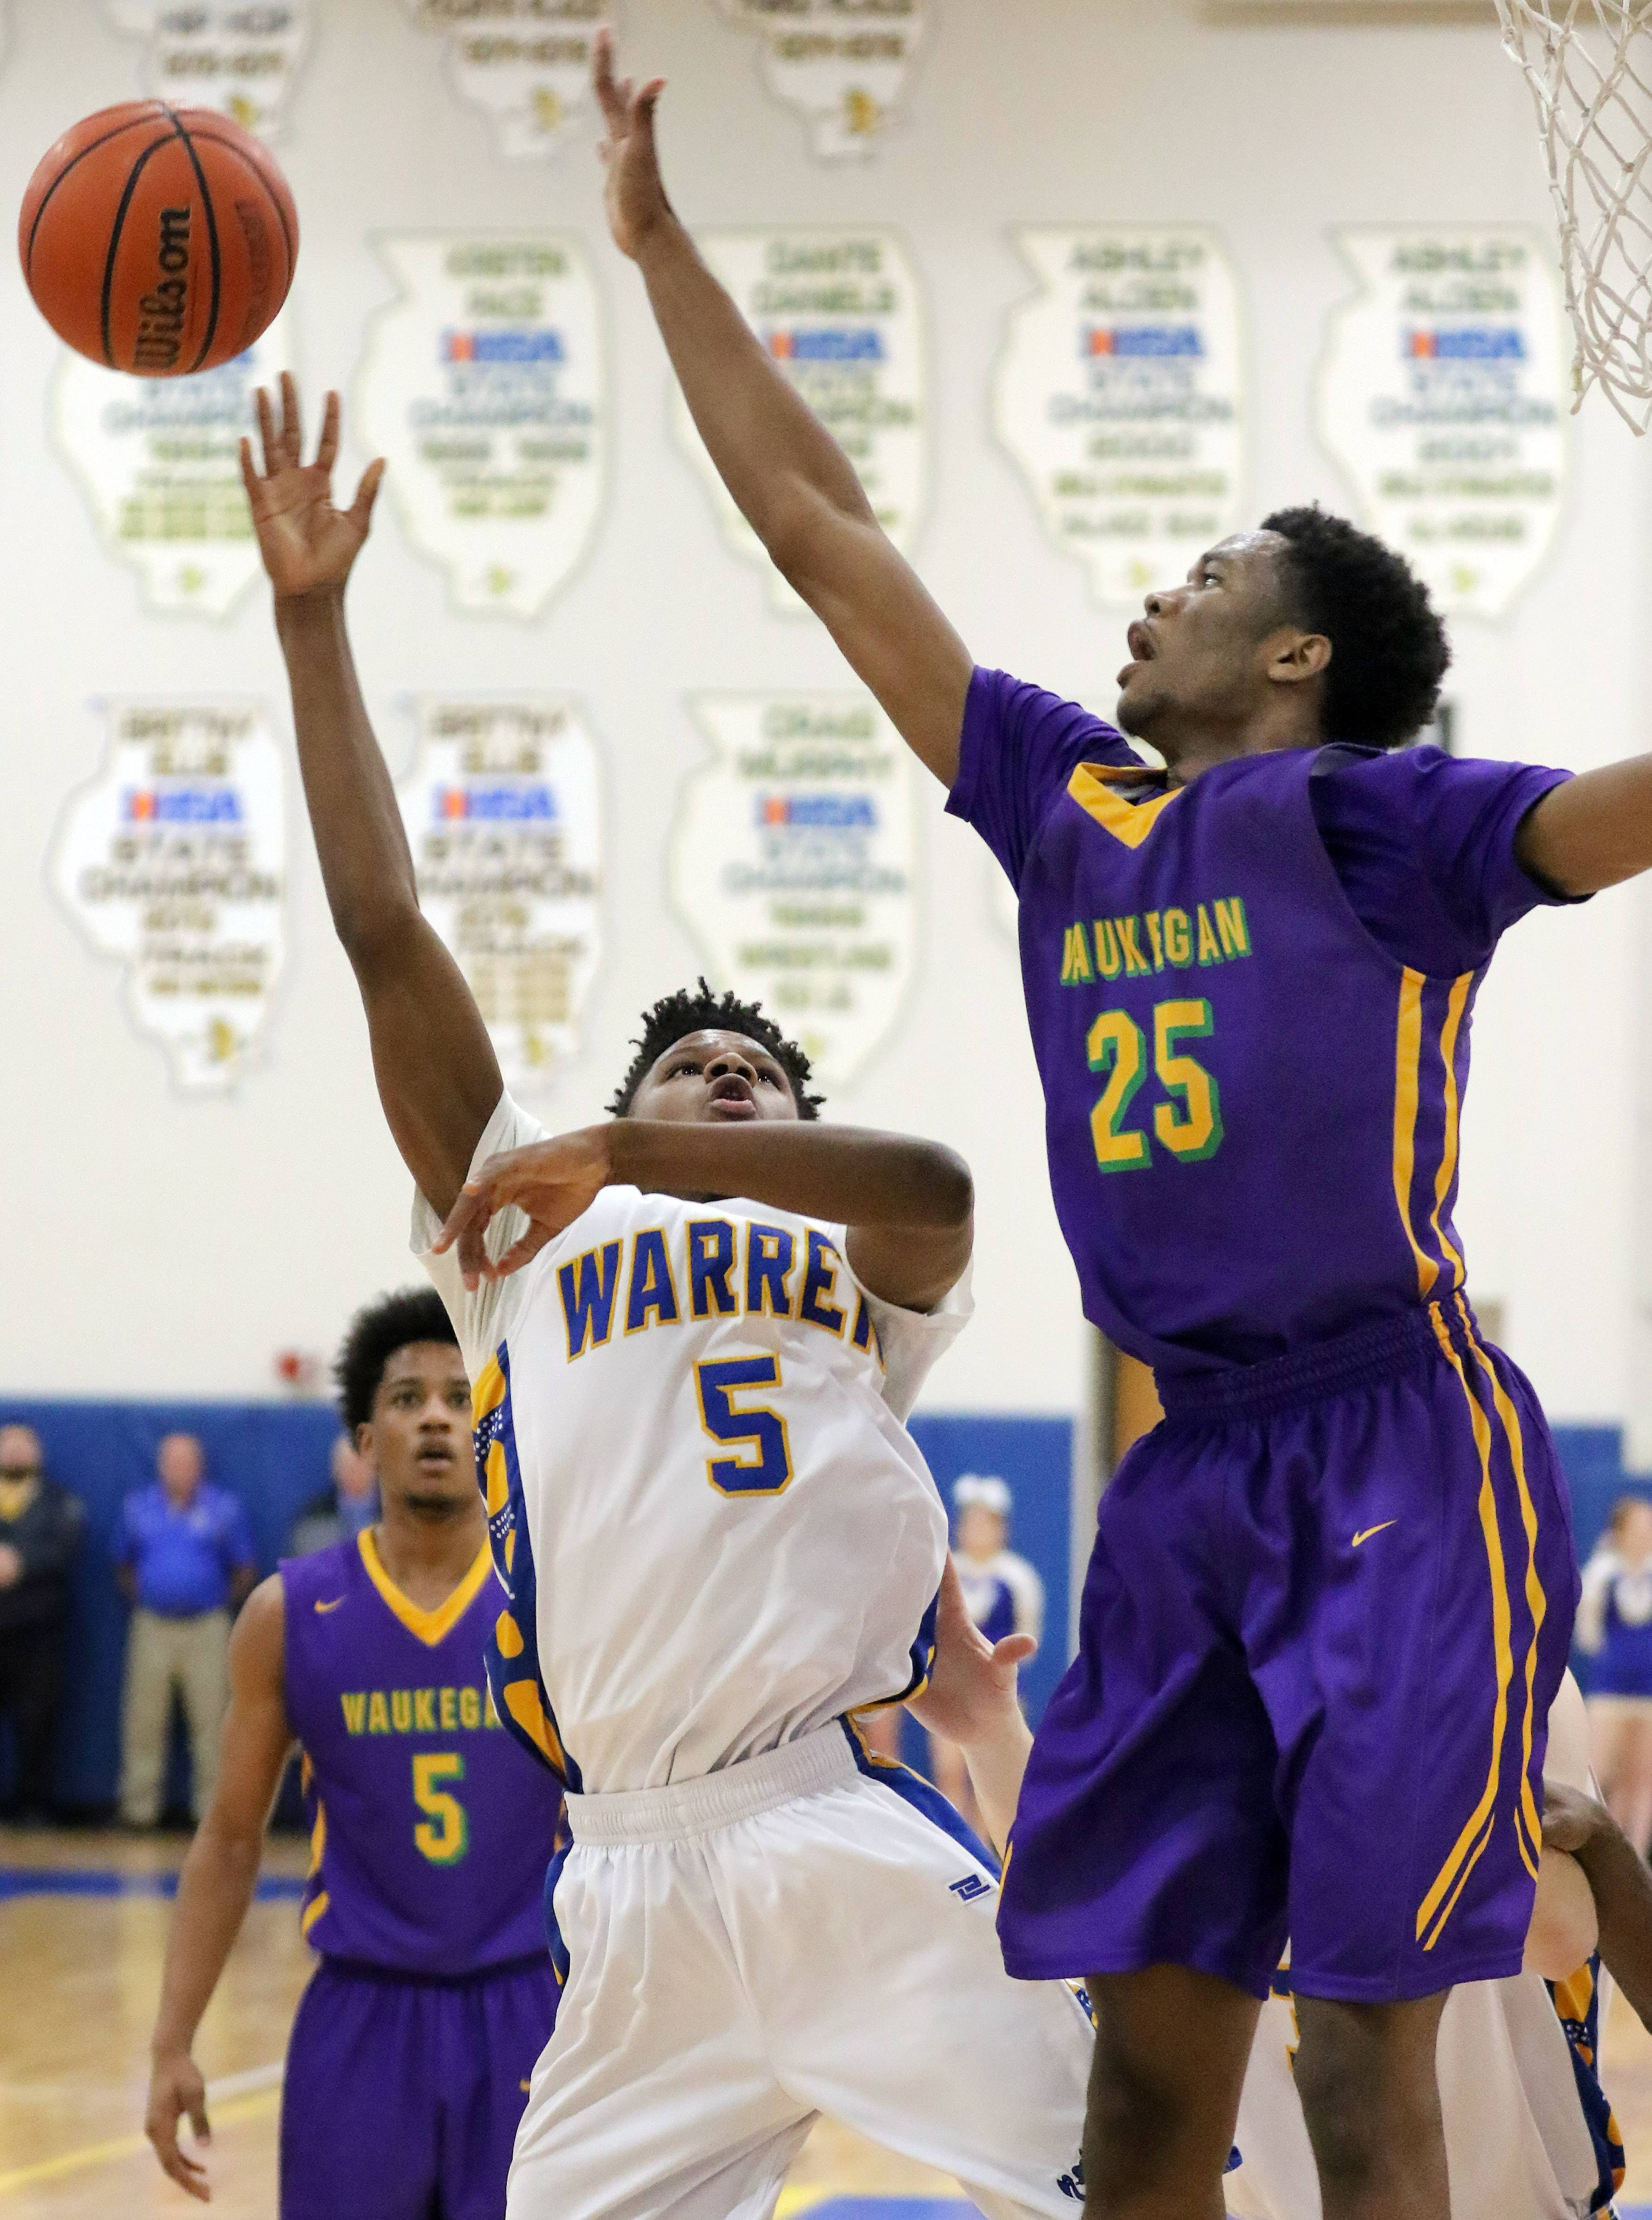 Warren's Juwan Perry, left, shoots over Waukegan's Bryant Brown on Tuesday night in Gurnee.